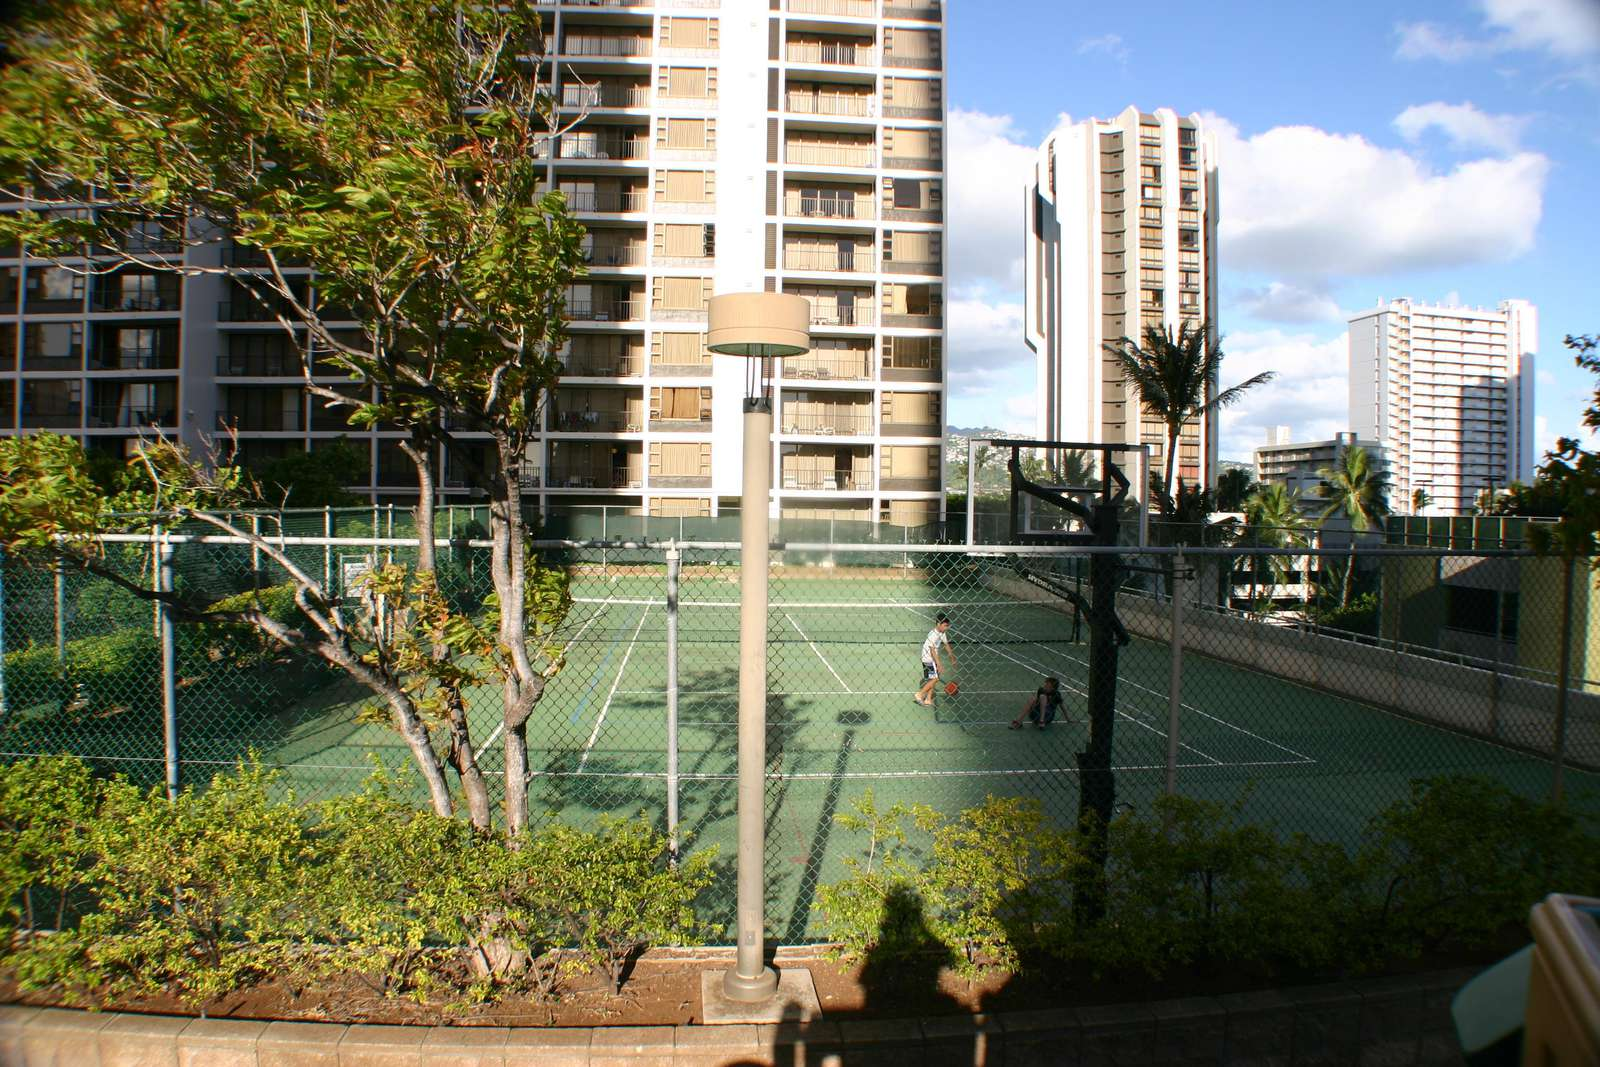 tennis court on the recreation deck